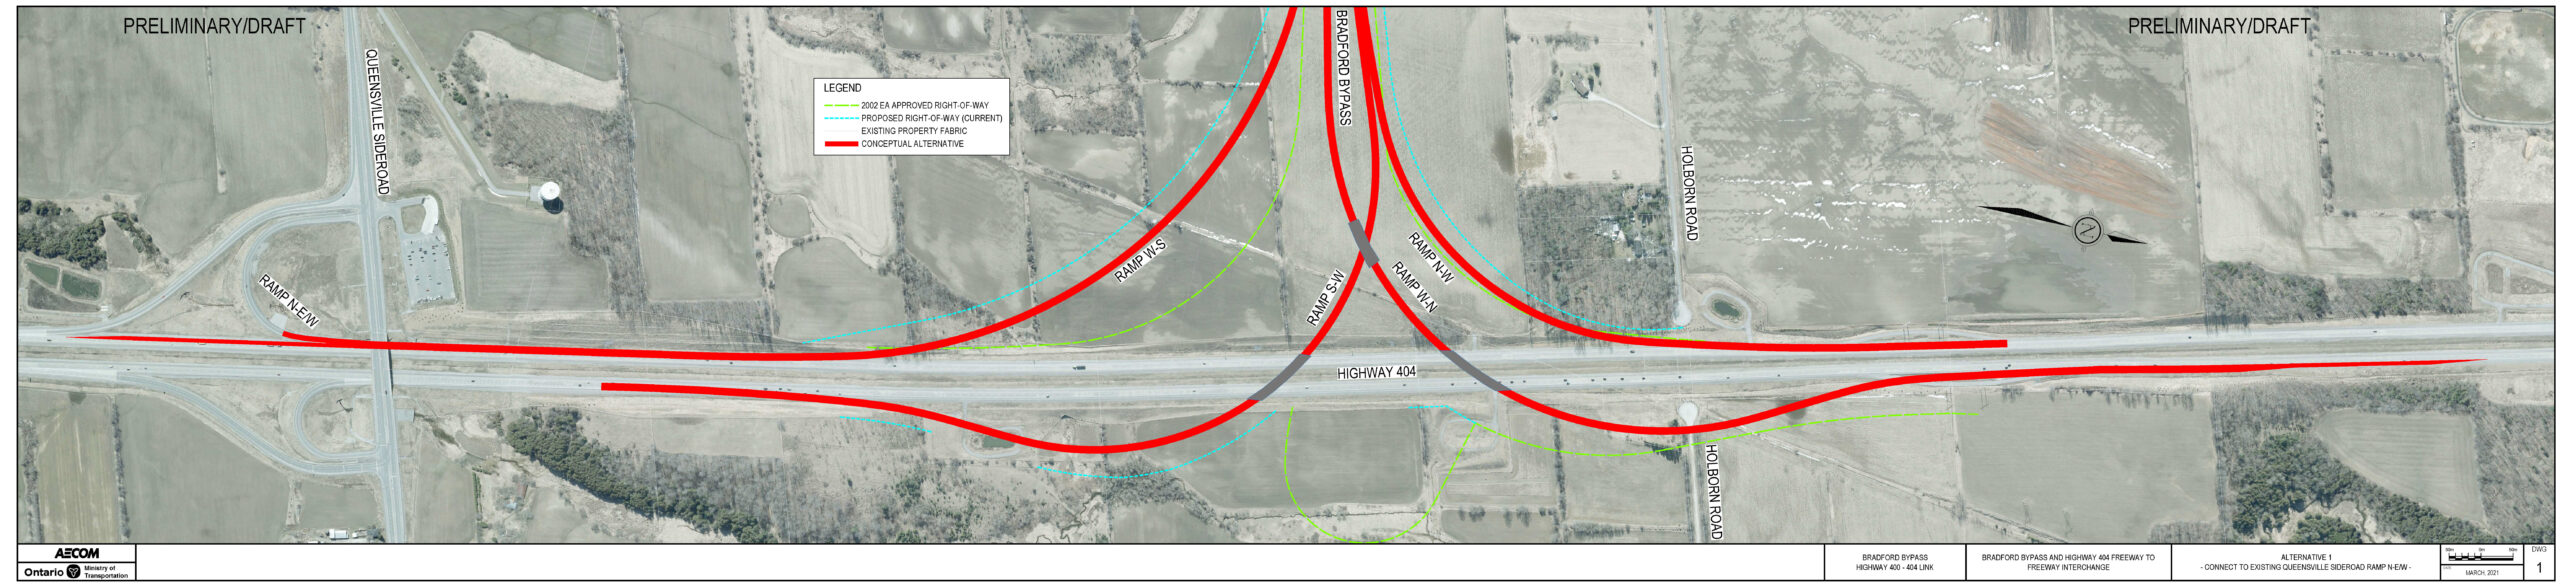 Highway 404 Interchange Refinement Alternative 1 with two lane extension from Bradford Bypass to Connect with Existing Queensville Sideroad Ramp